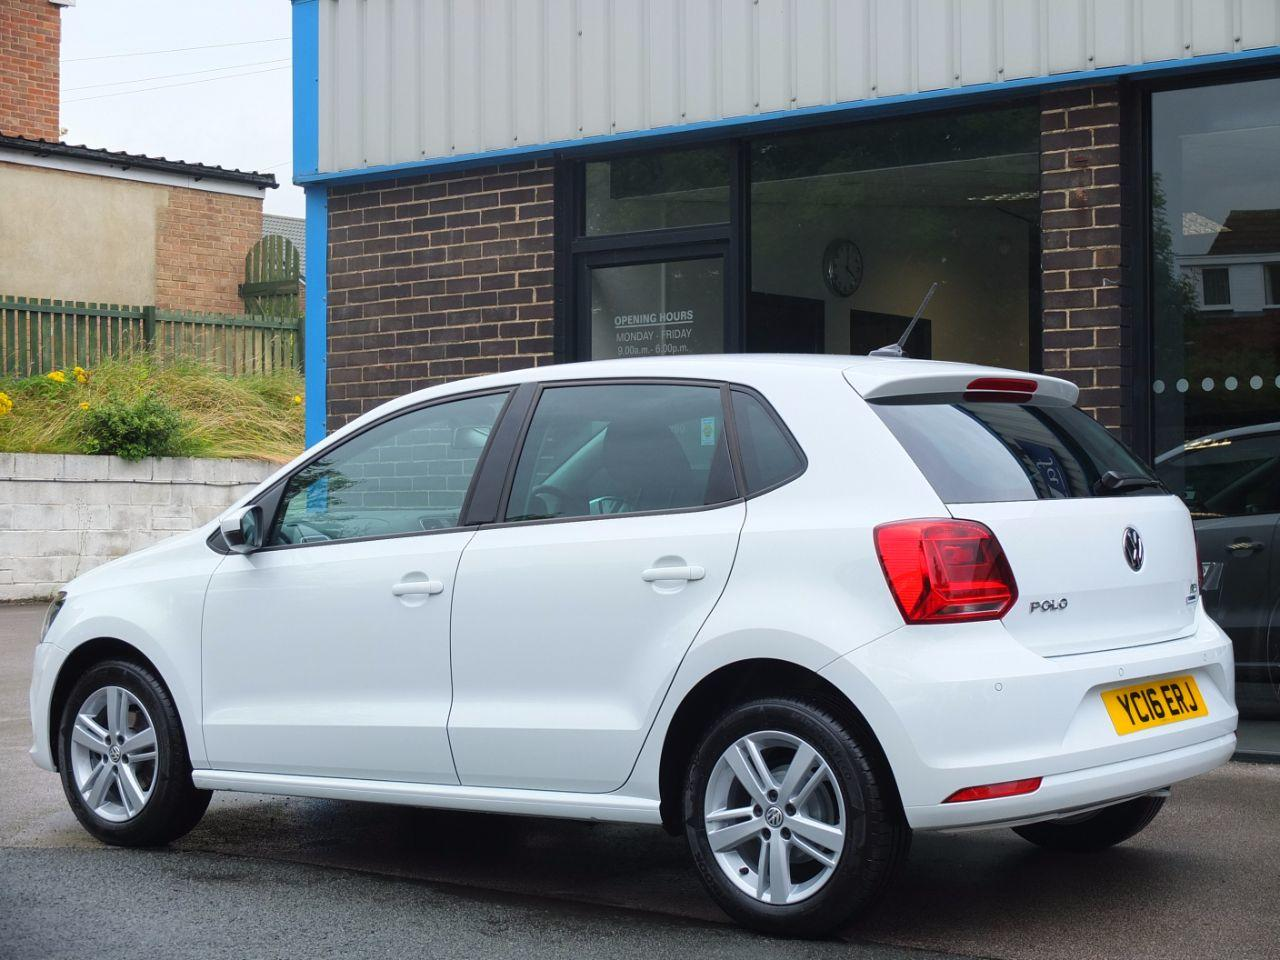 Volkswagen Polo 1.4 TDI 75ps Bluemotion Tech Match 5 door (Satellite Navigation) Hatchback Diesel Pure White